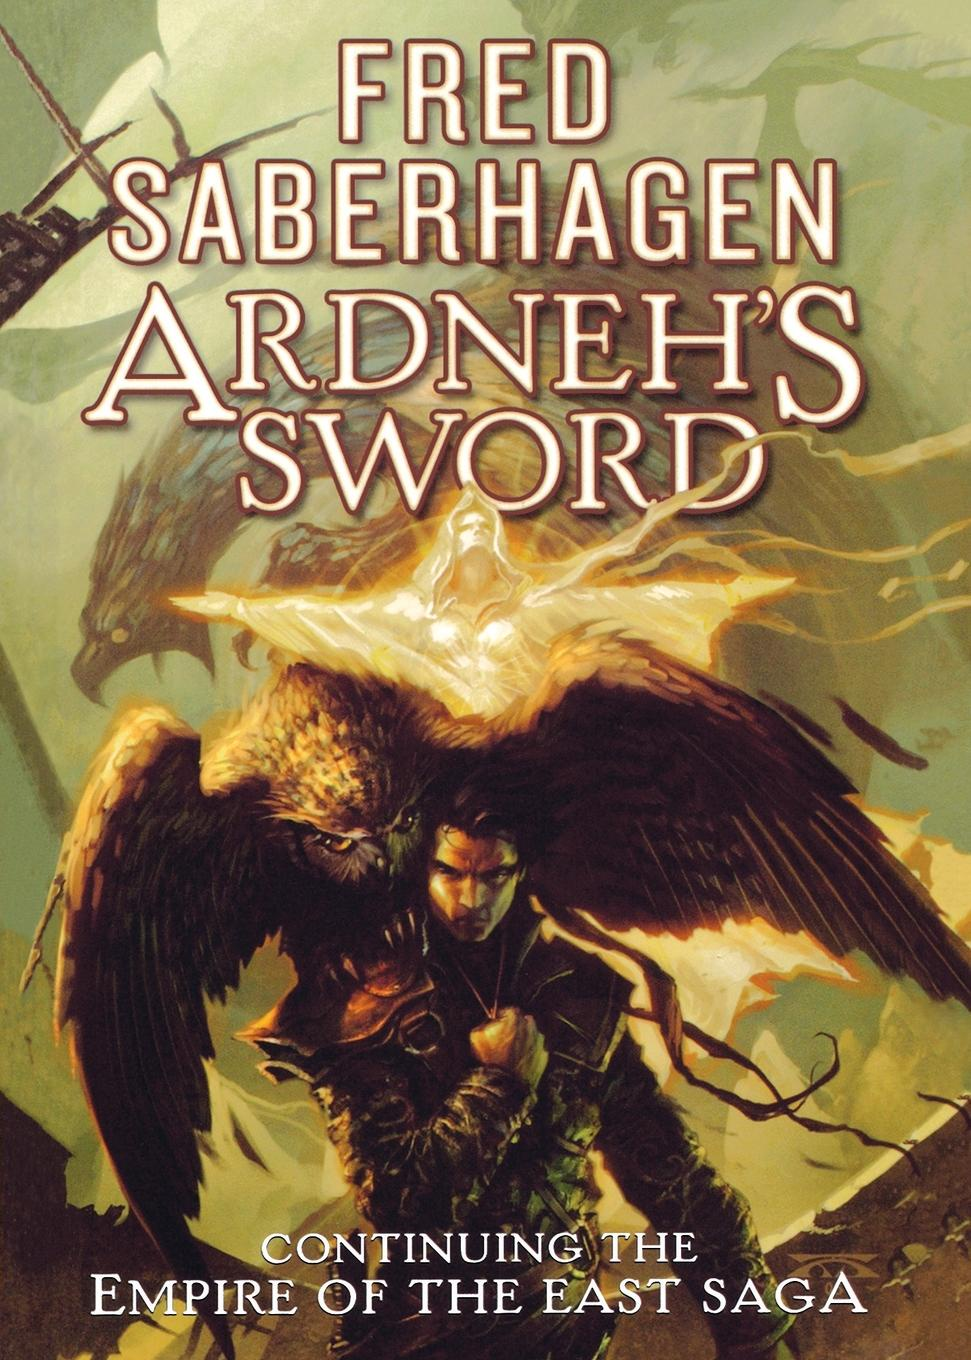 Fred Saberhagen Ardneh's Sword. Continuing the Empire of the East Saga daughter of the sword